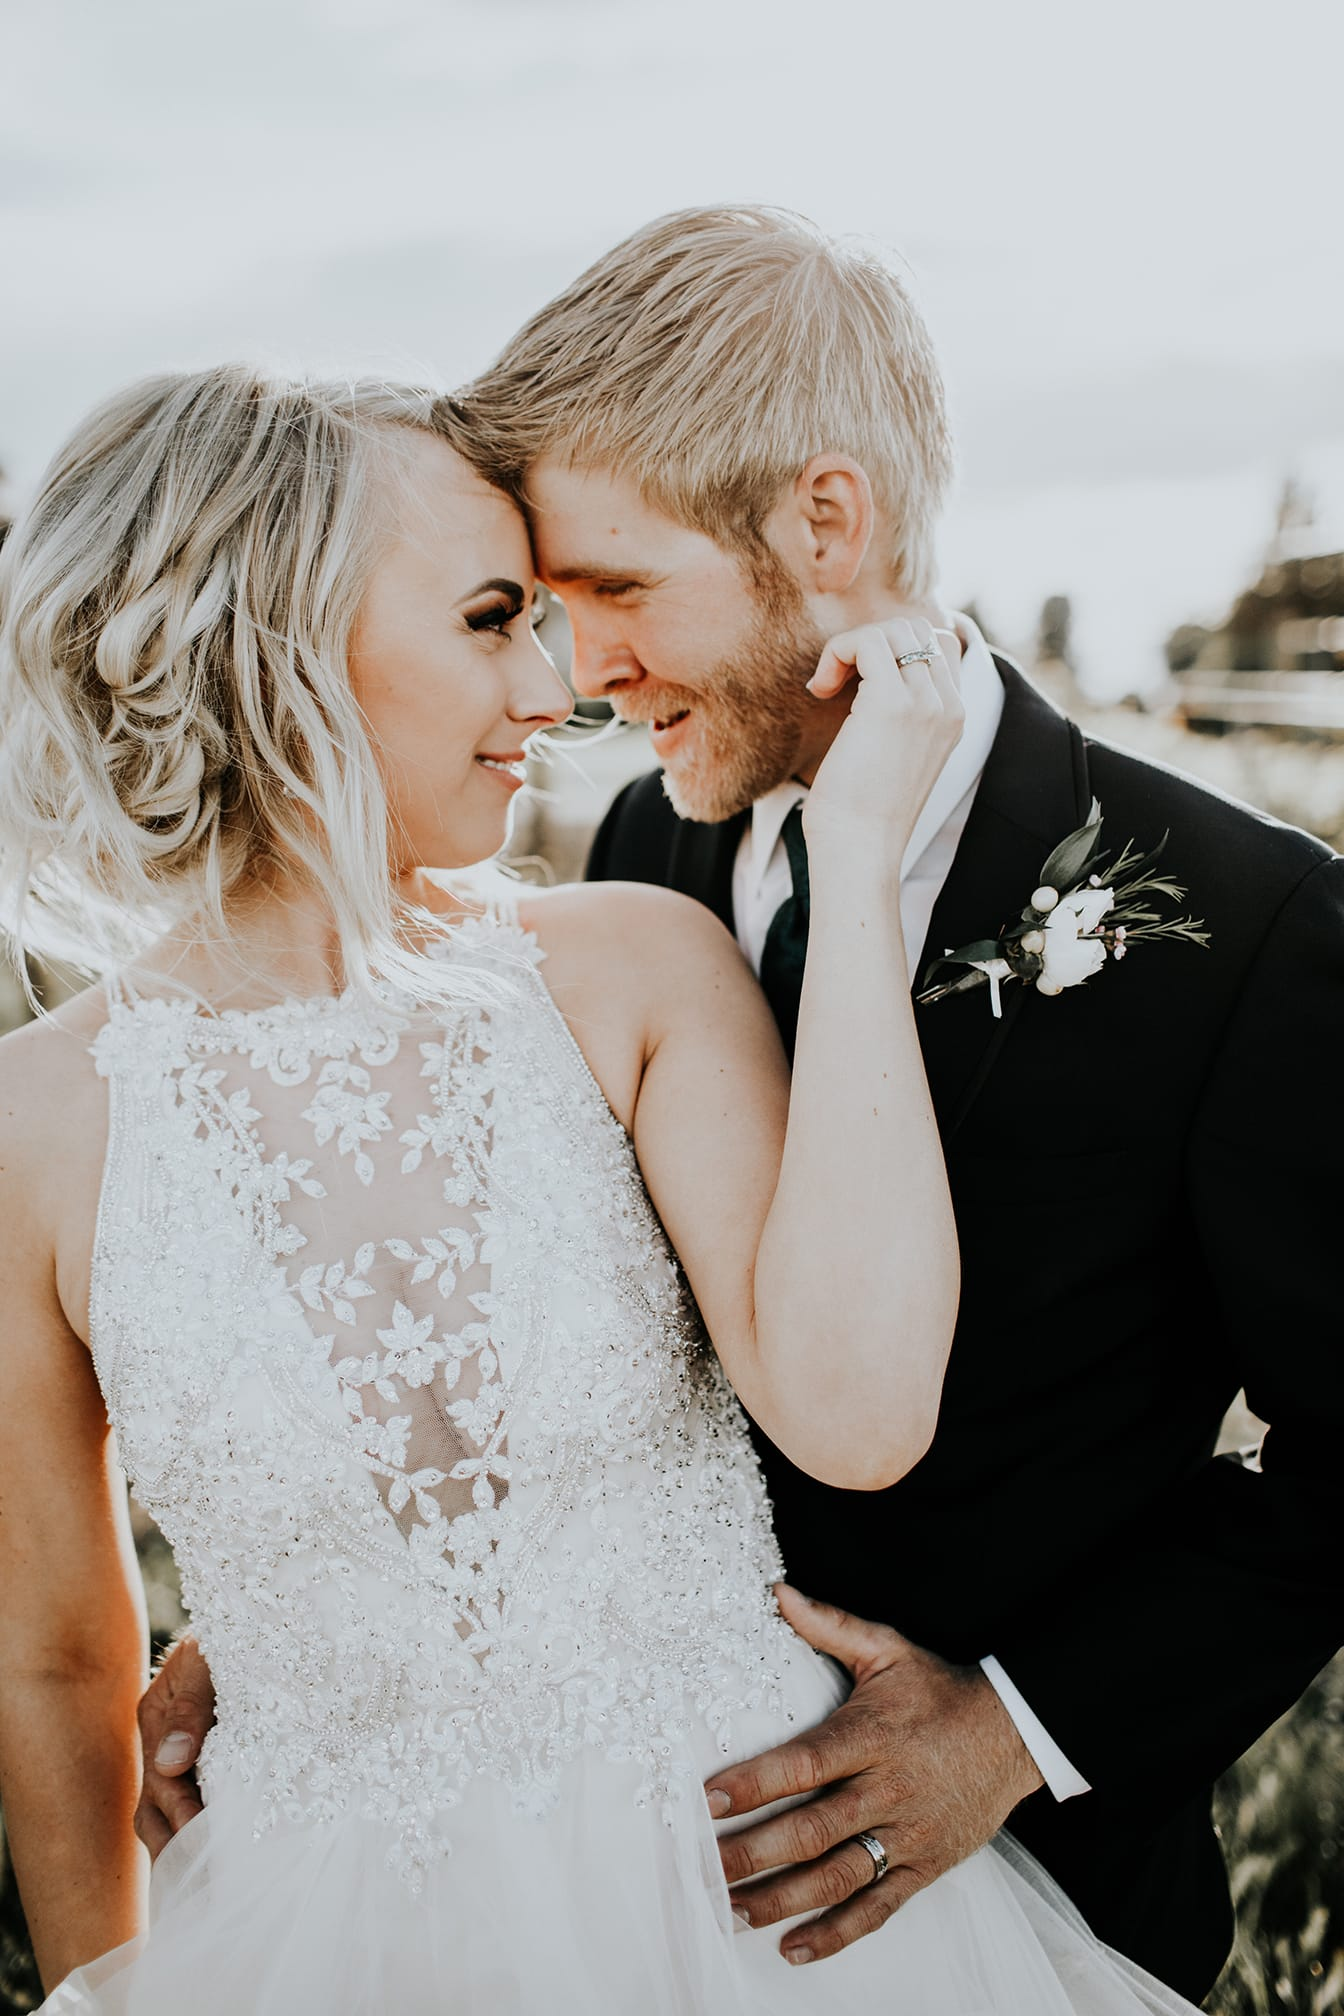 Birthday Proposal Leads to Romantic and Elegant Walla Walla Wedding. Maggie Bride Taylor wearing Lisette ball gown wedding dress by Maggie Sottero.